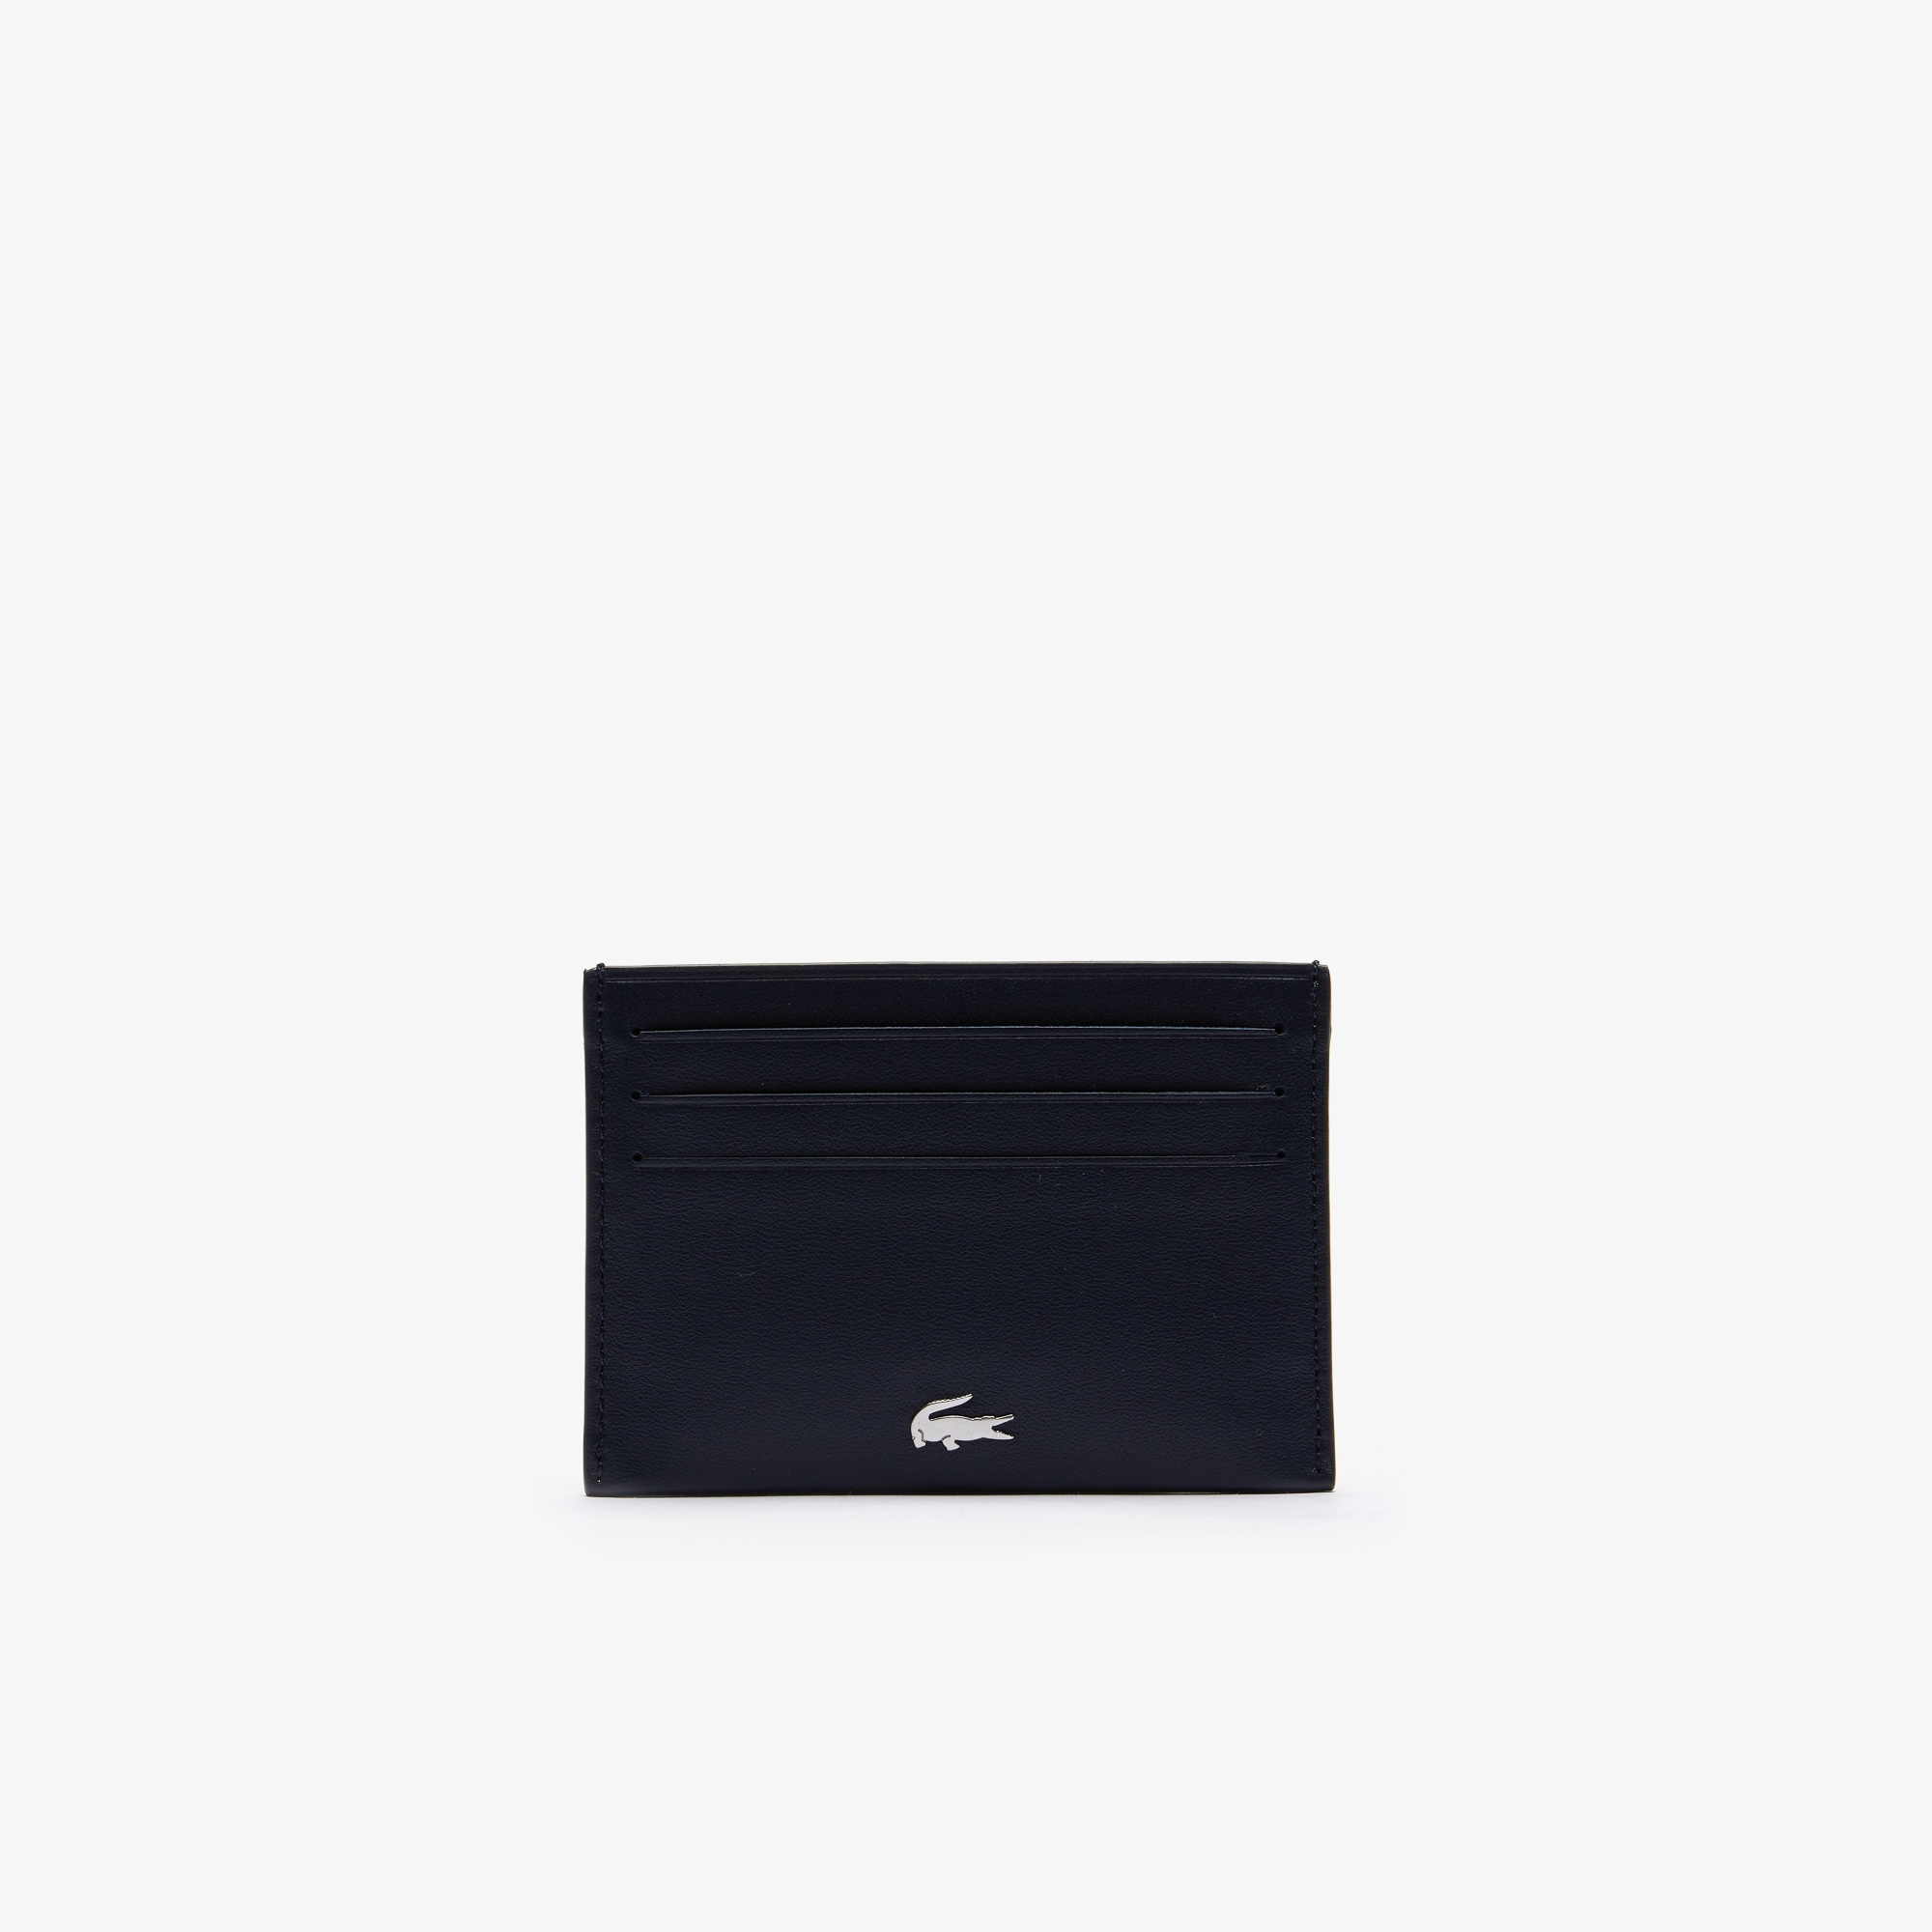 FG CREDIT CARD HOLDER